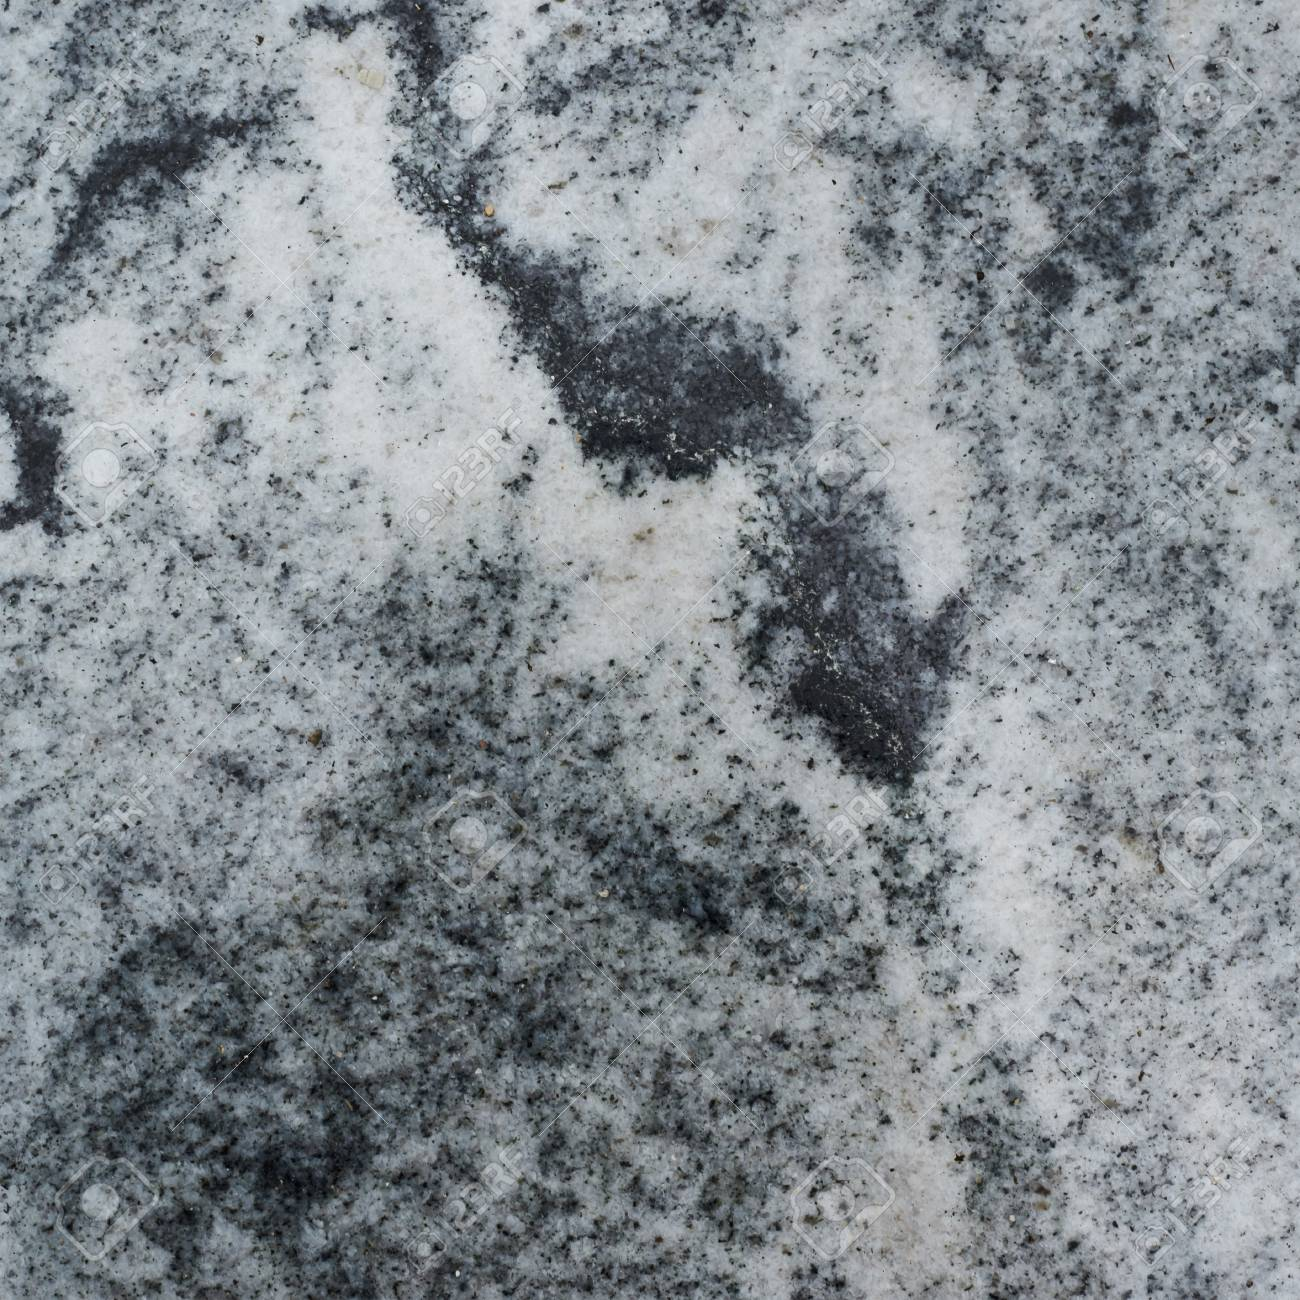 Polished marble surface texture as abstract background Stock Photo - 21871640